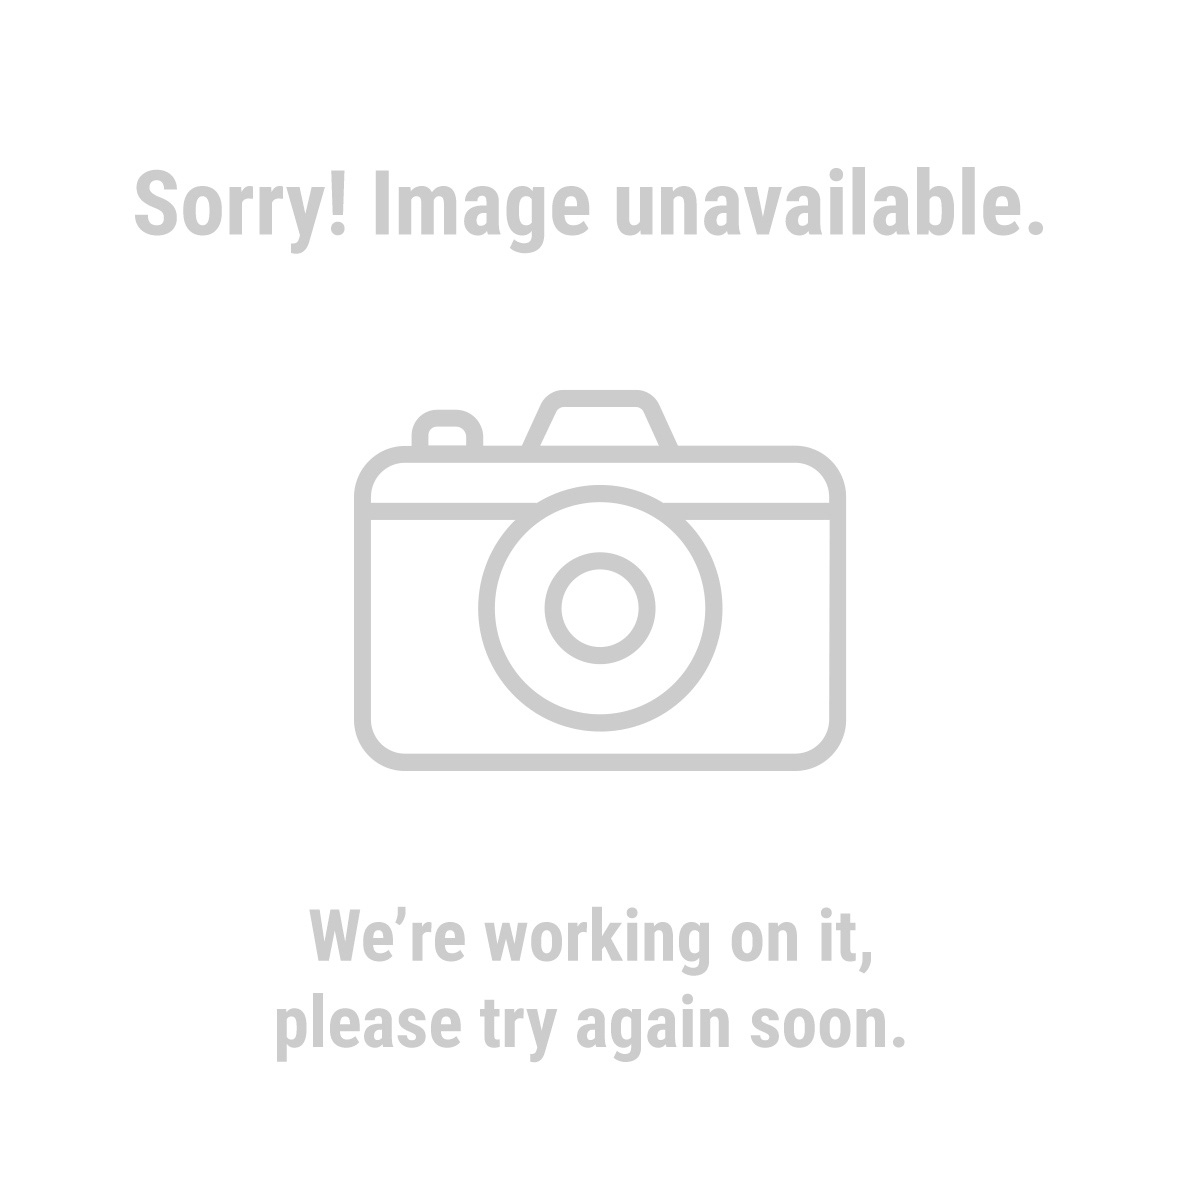 Predator Engines 60363 6.5 HP (212cc) OHV Horizontal Shaft Gas Engine